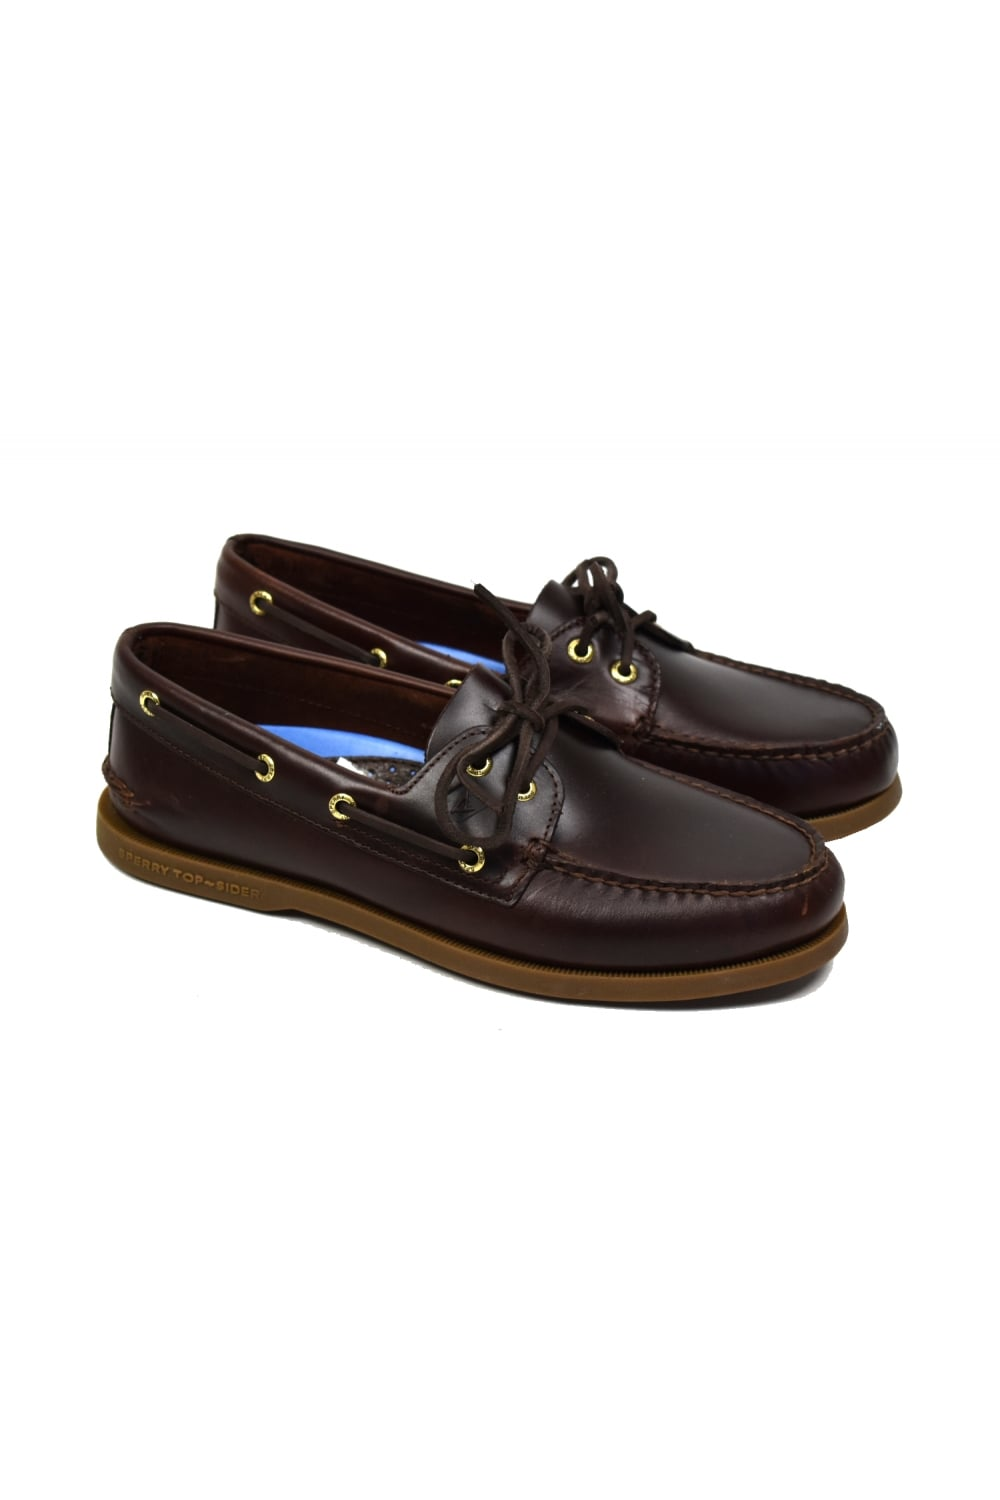 mens black sperry boat shoes discount